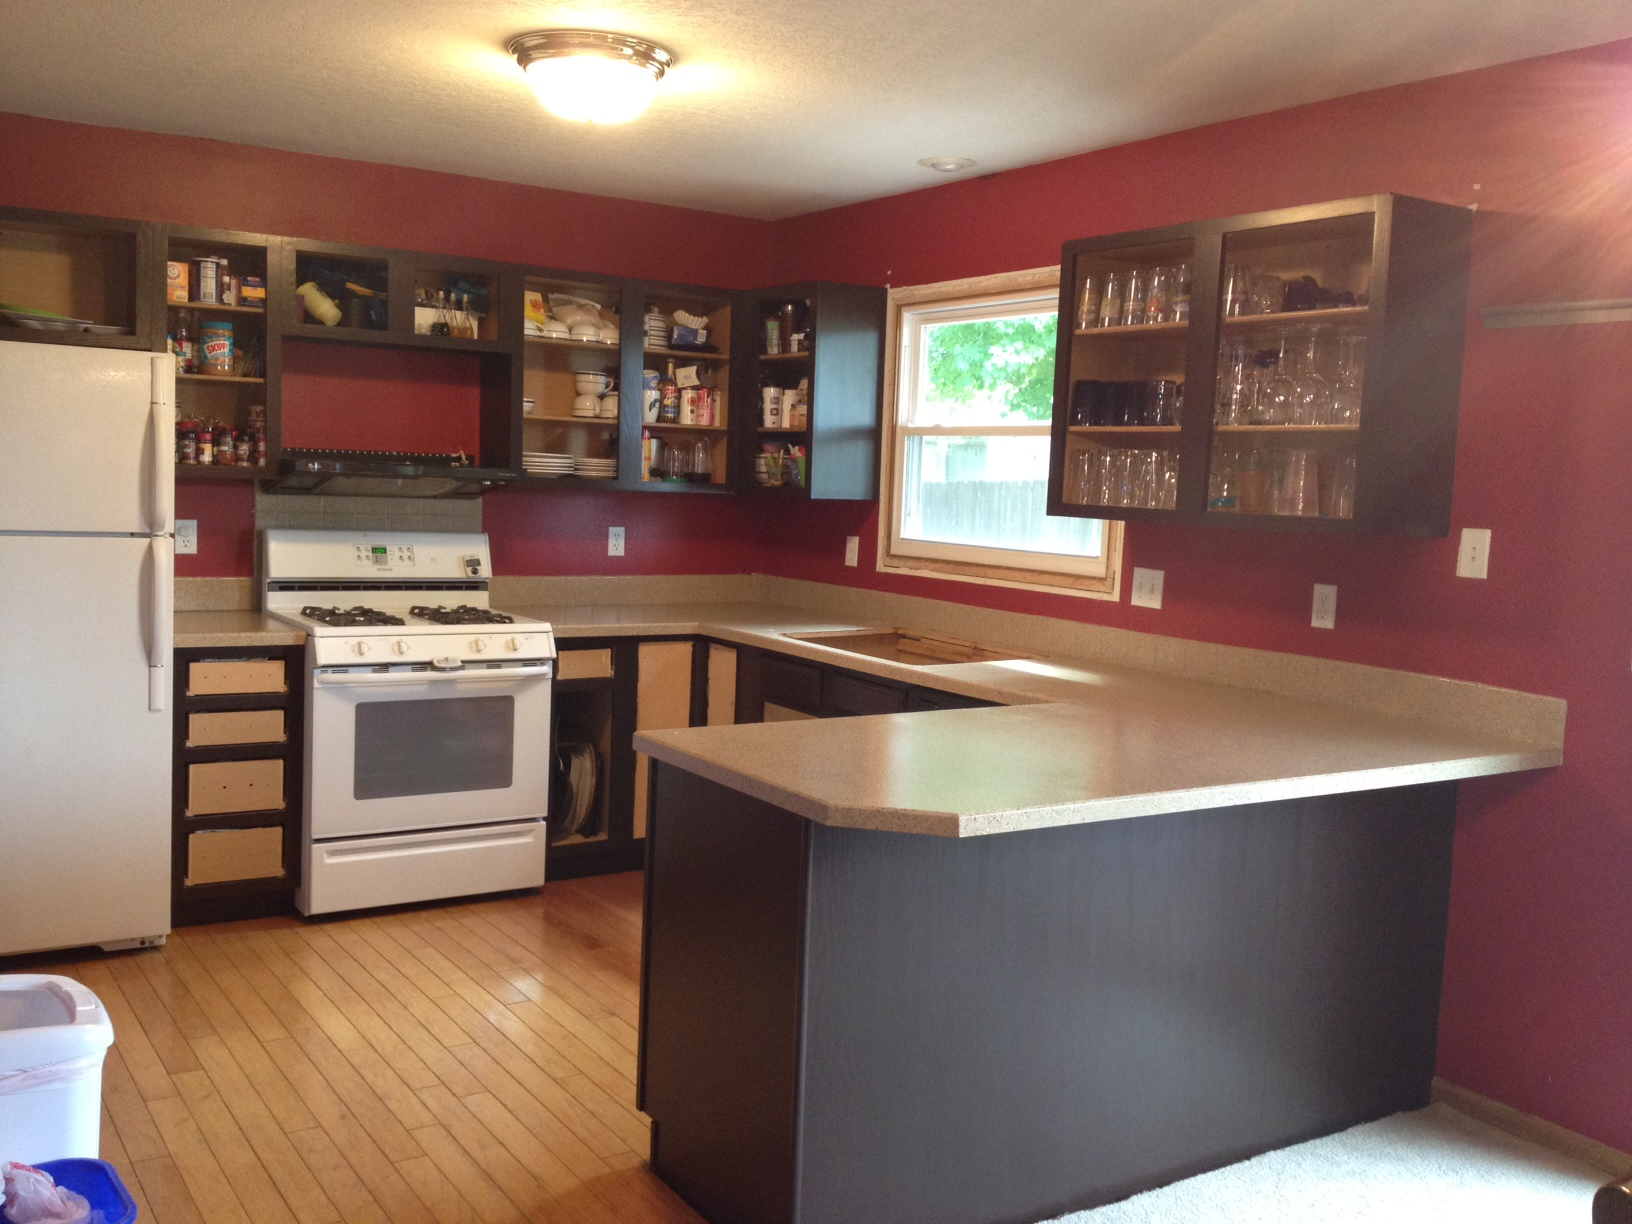 painting kitchen cabinets cabinets for kitchen painting kitchen cabinets frames painted